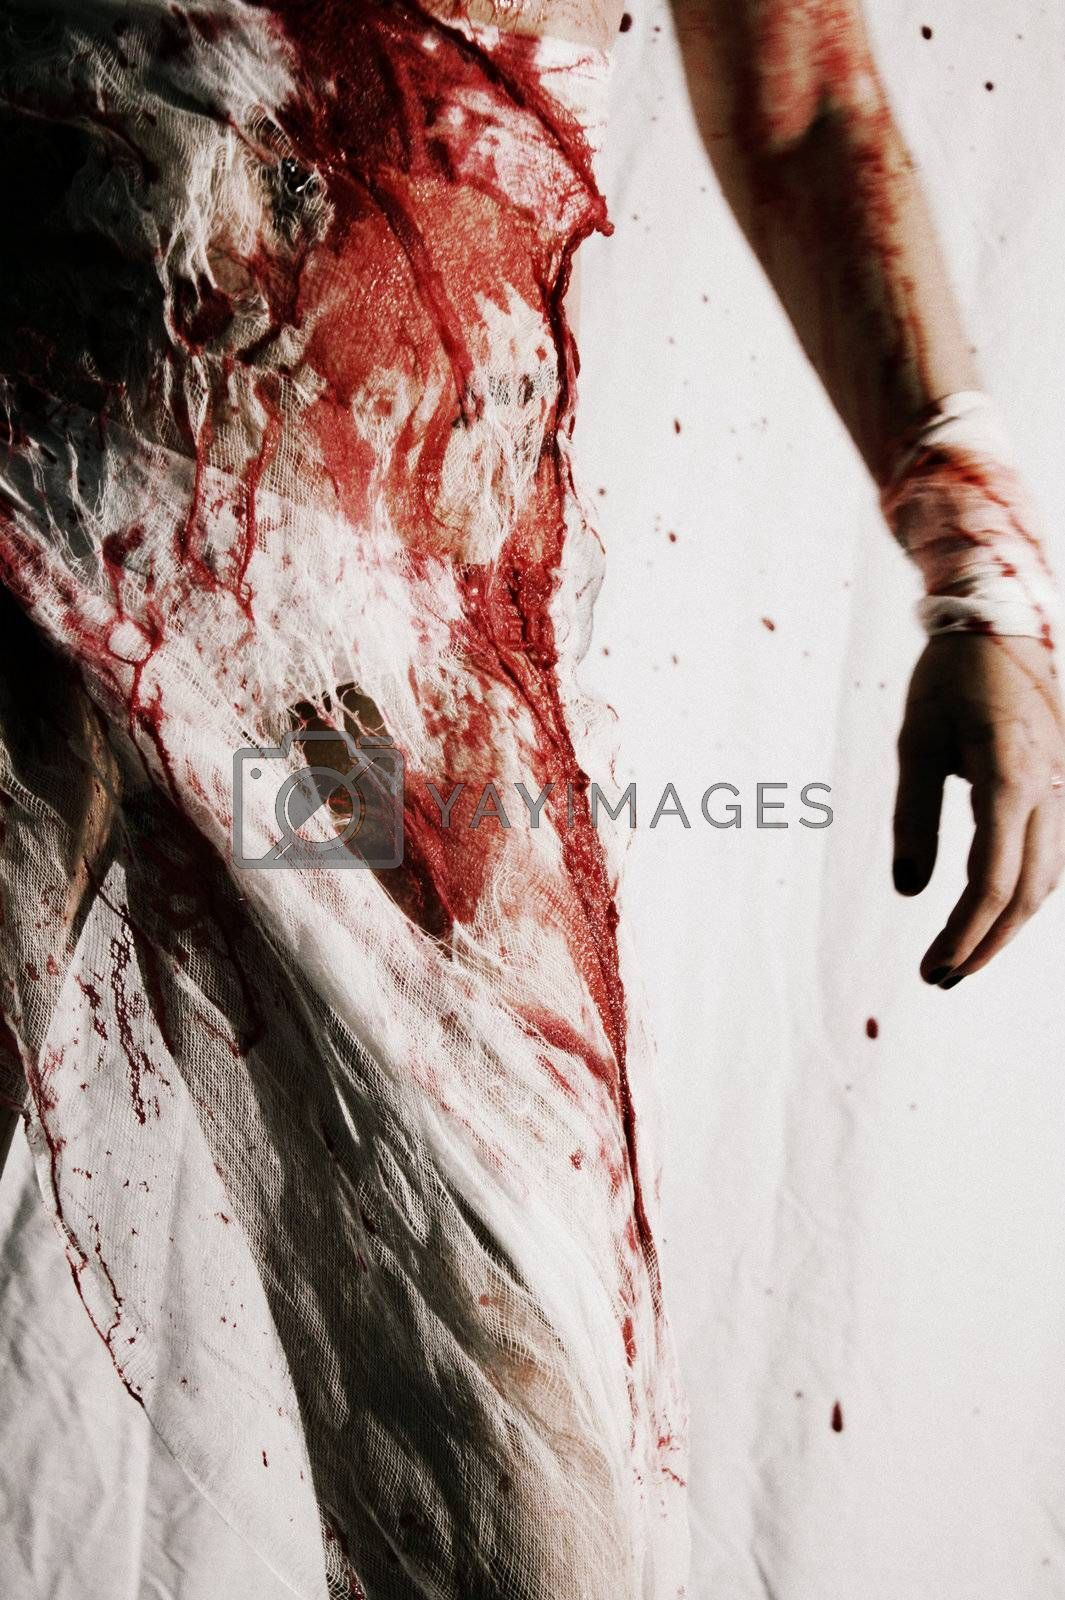 Horror Wrapped in Cloth and Blood